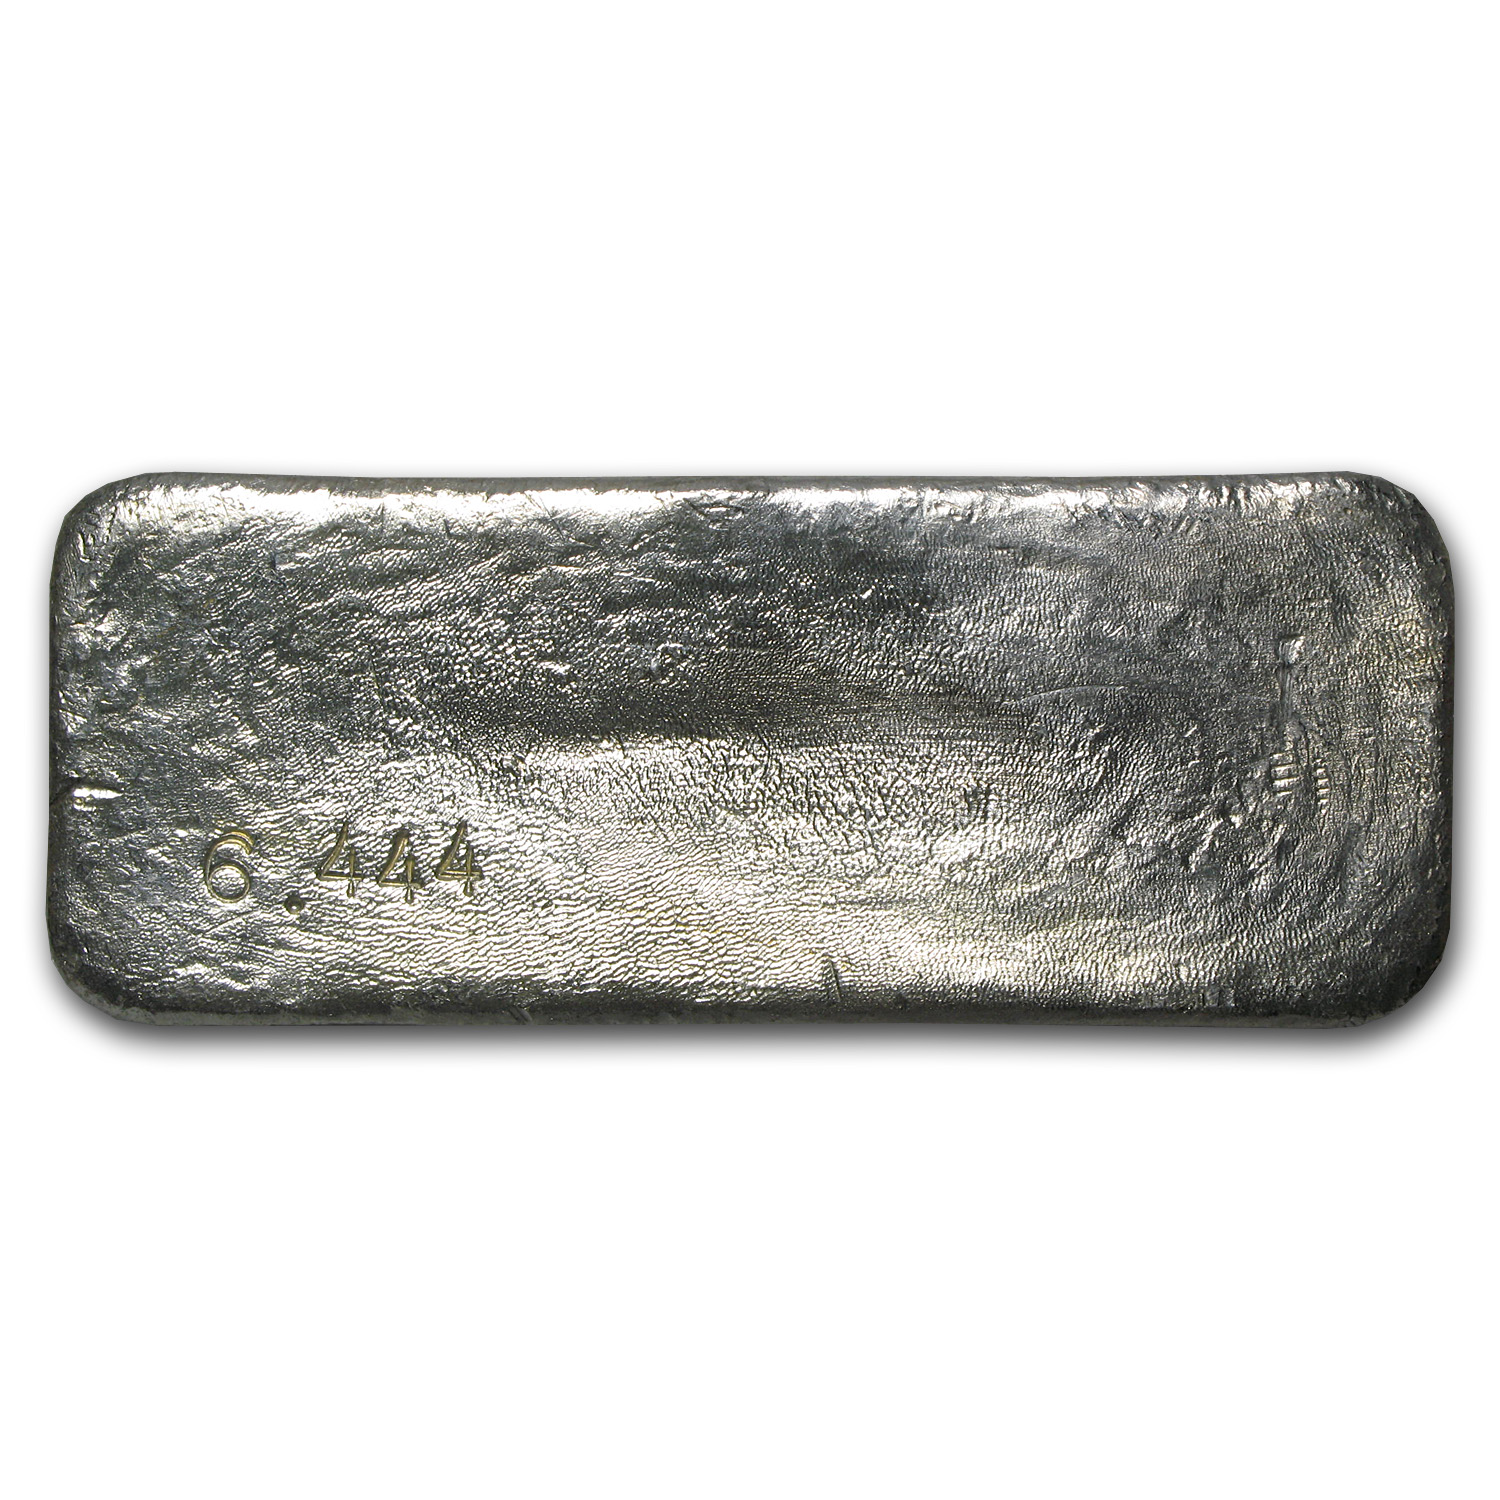 21.80 oz Silver Bars - Golden Analytical